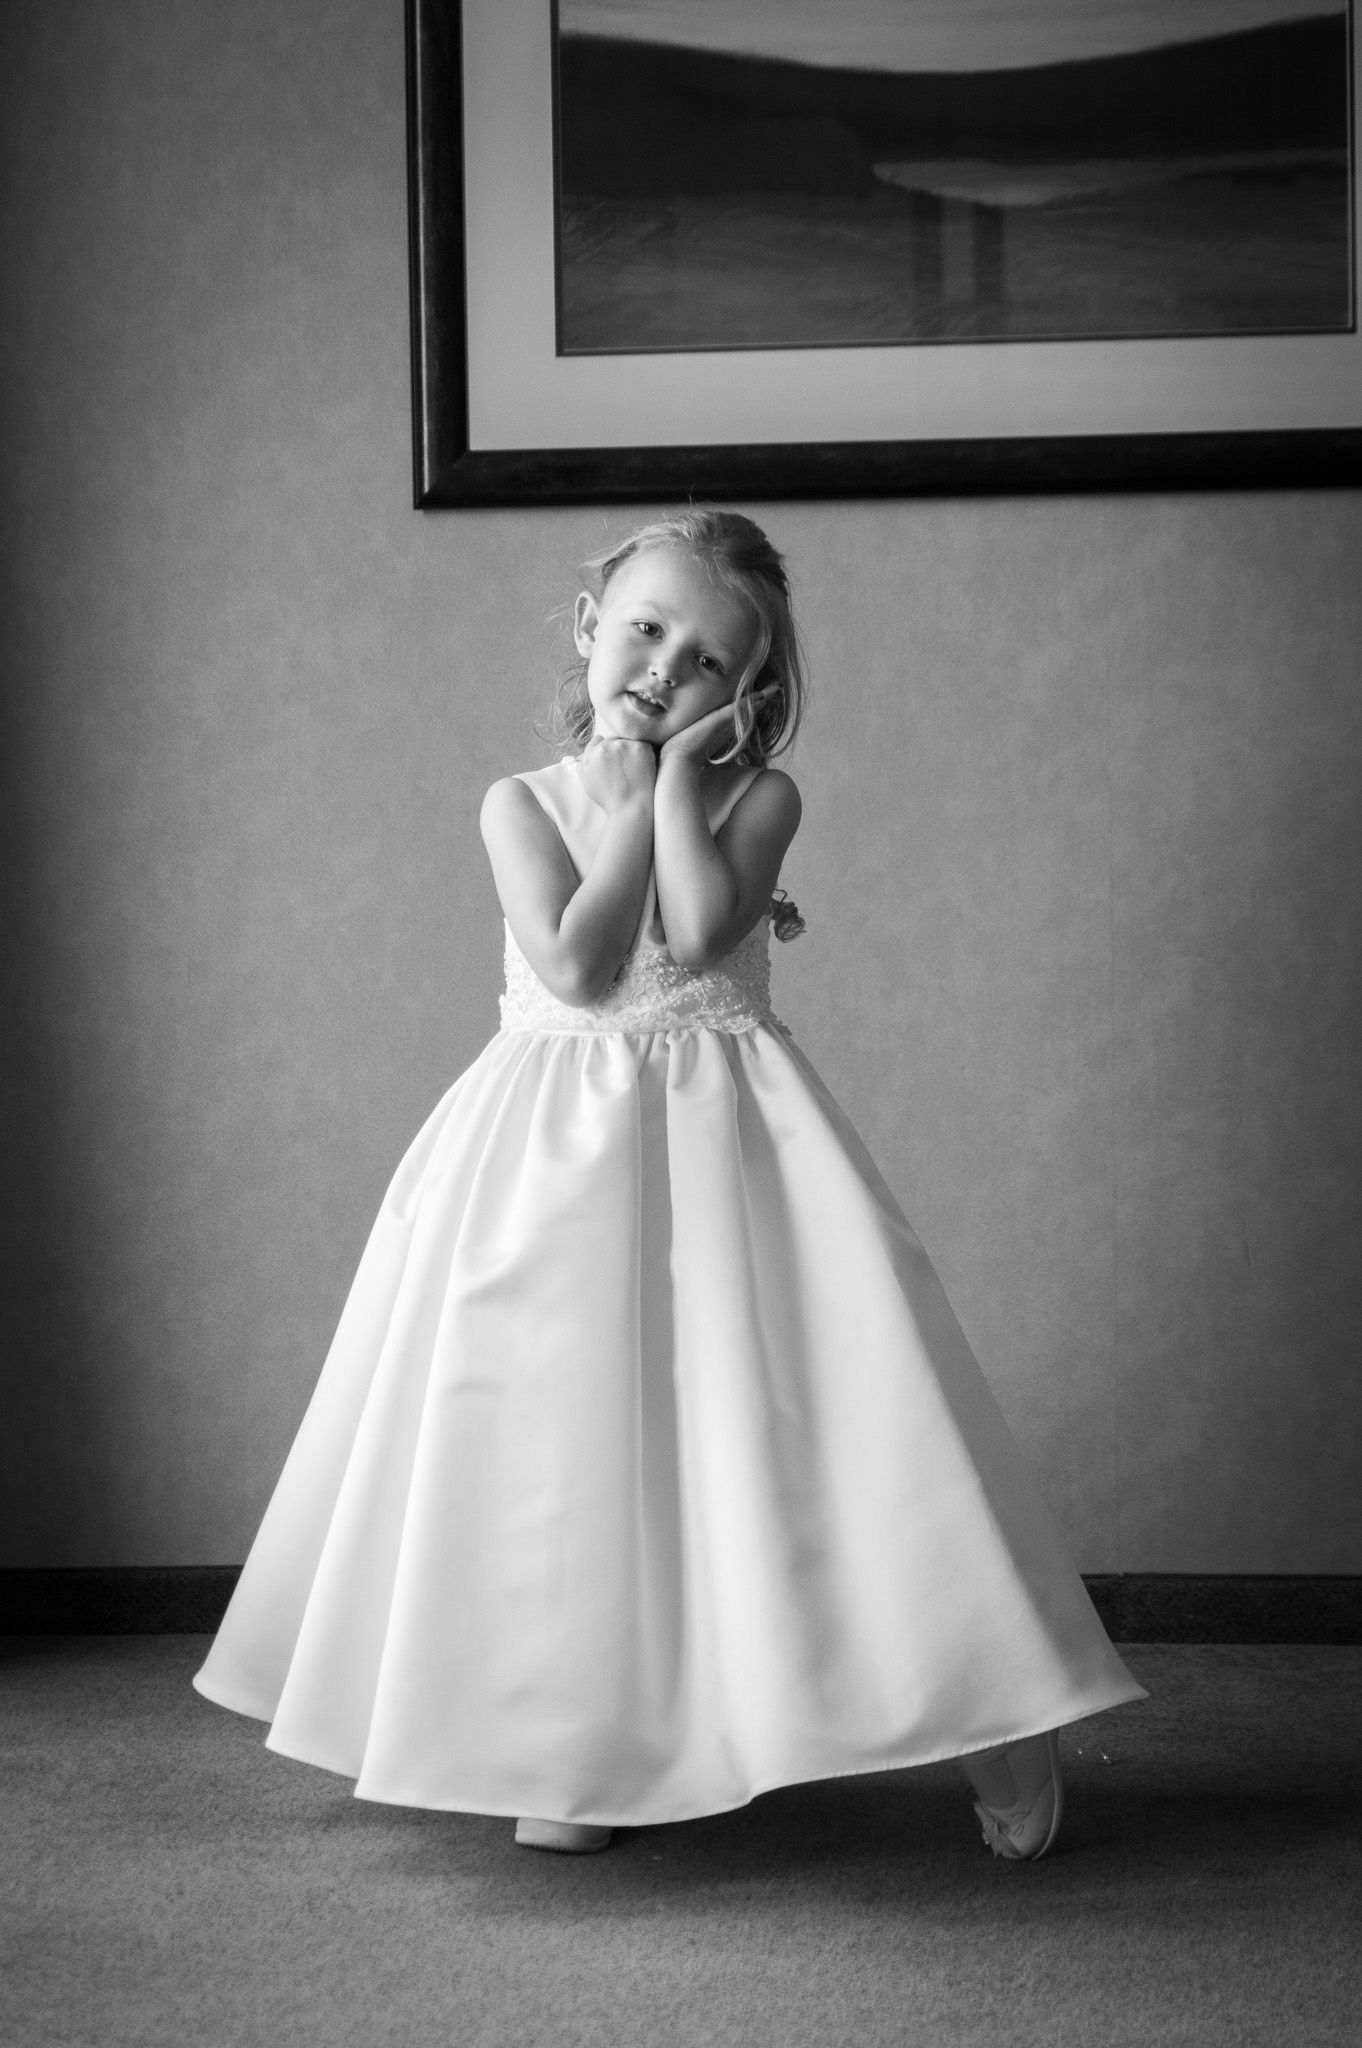 Flower girl looking at camera in black and white